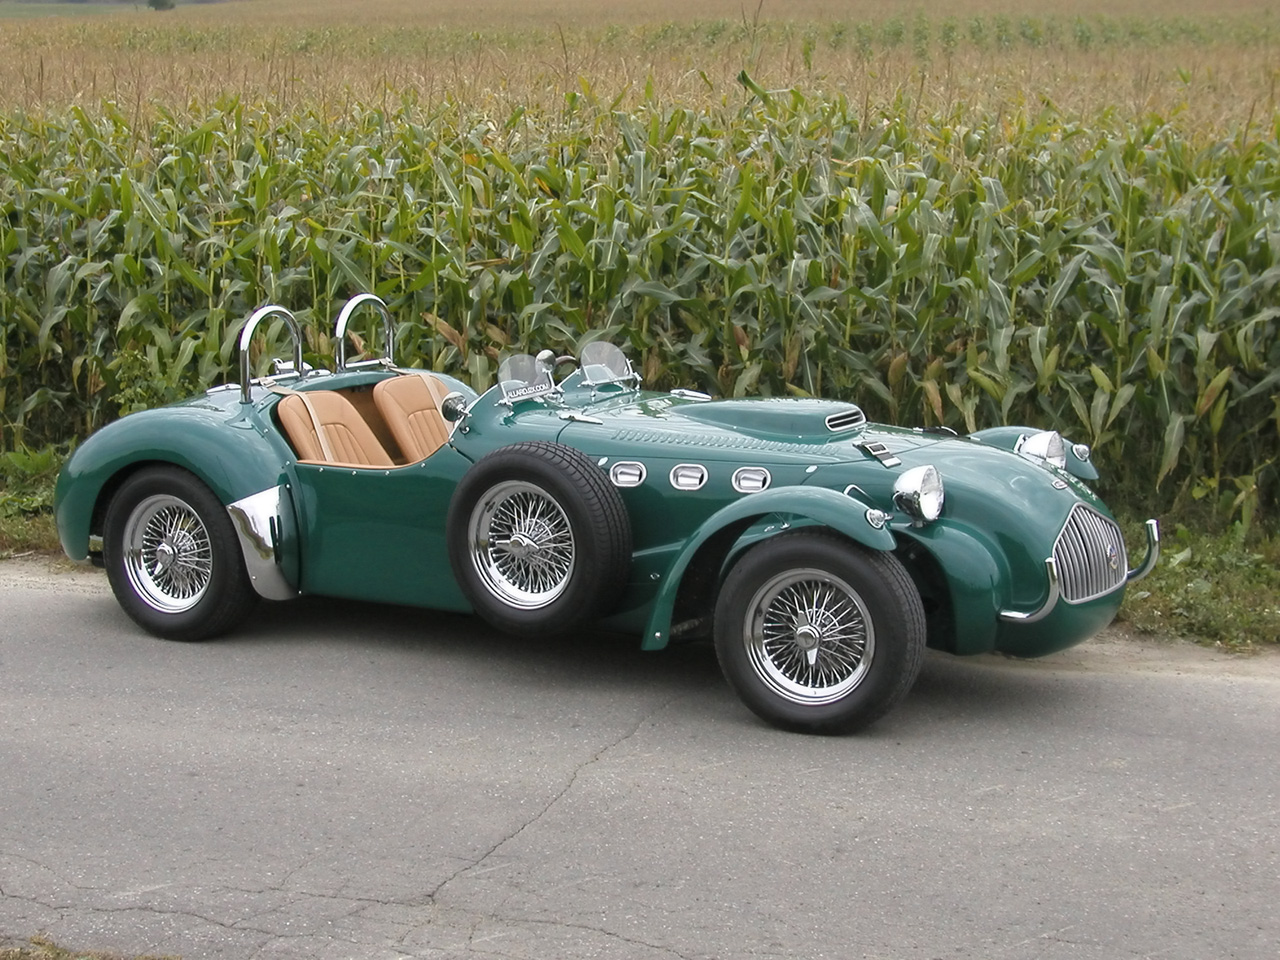 Photo of Allard J2X 34722 Image size 1280 x 960 Upload date 2006